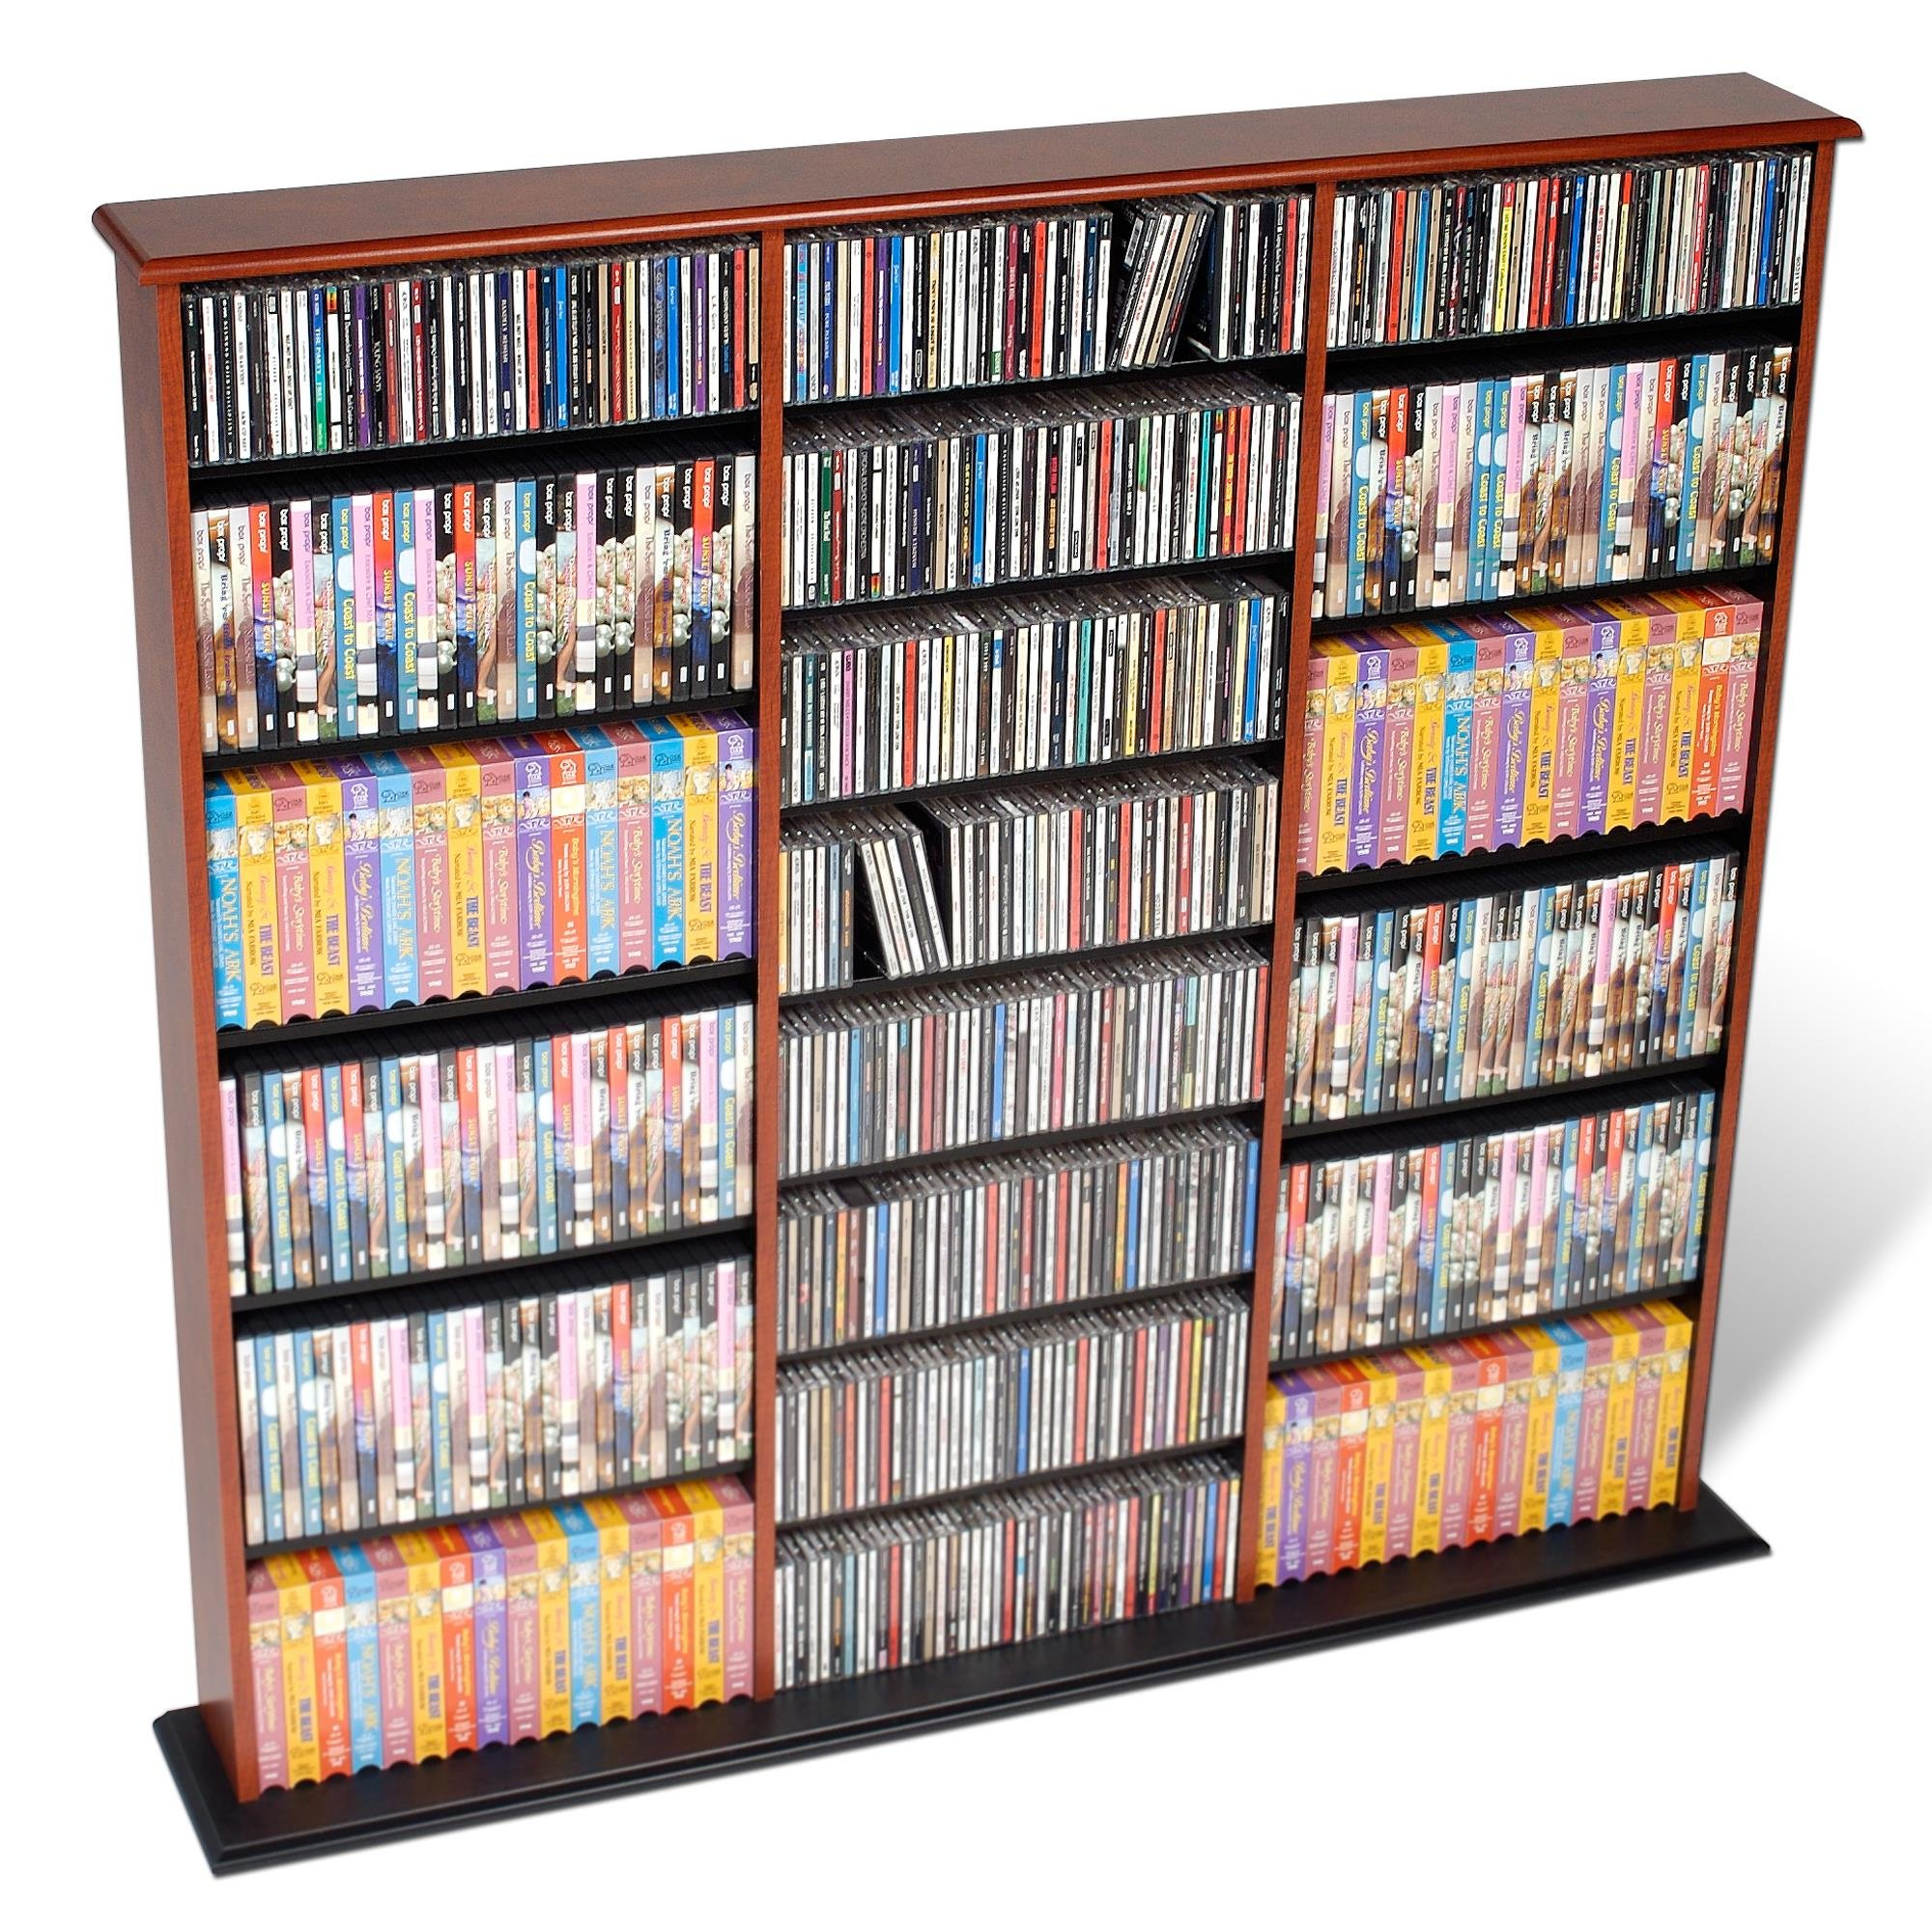 Prepac Triple Wide Wall Storage / CD Rack - Cherry & Black by Organize